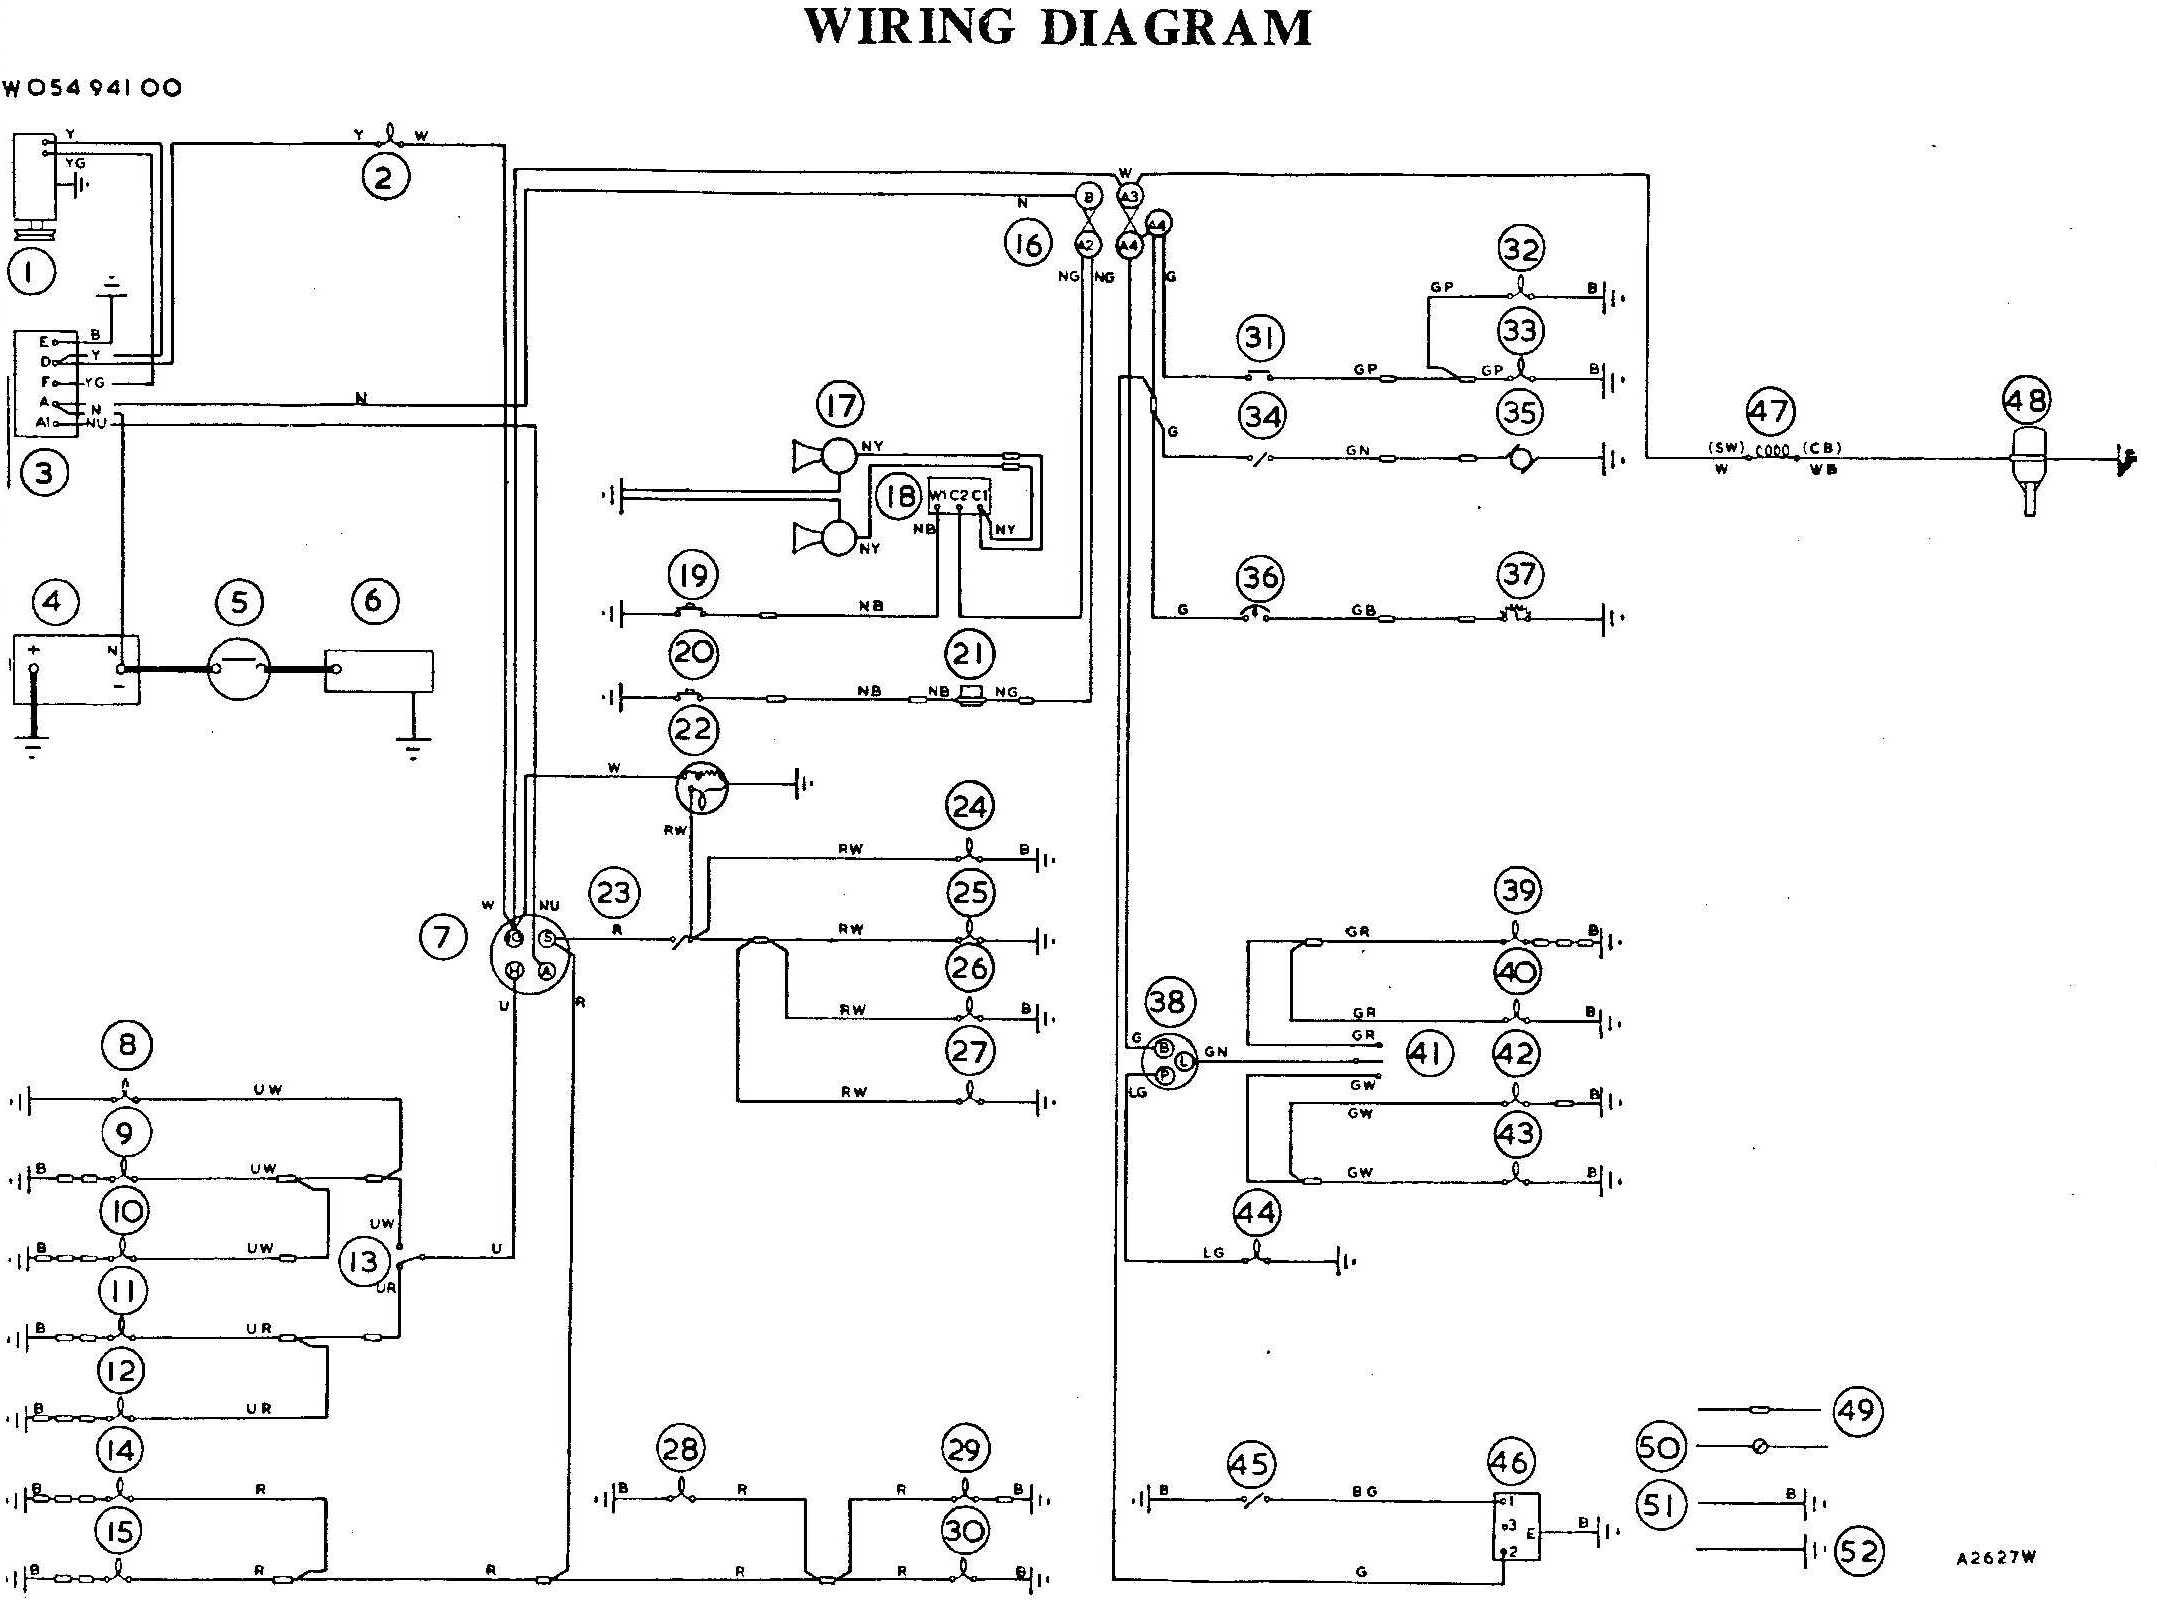 garage wiring diagram garage wiring diagrams online garage wiring diagram garage image wiring diagram